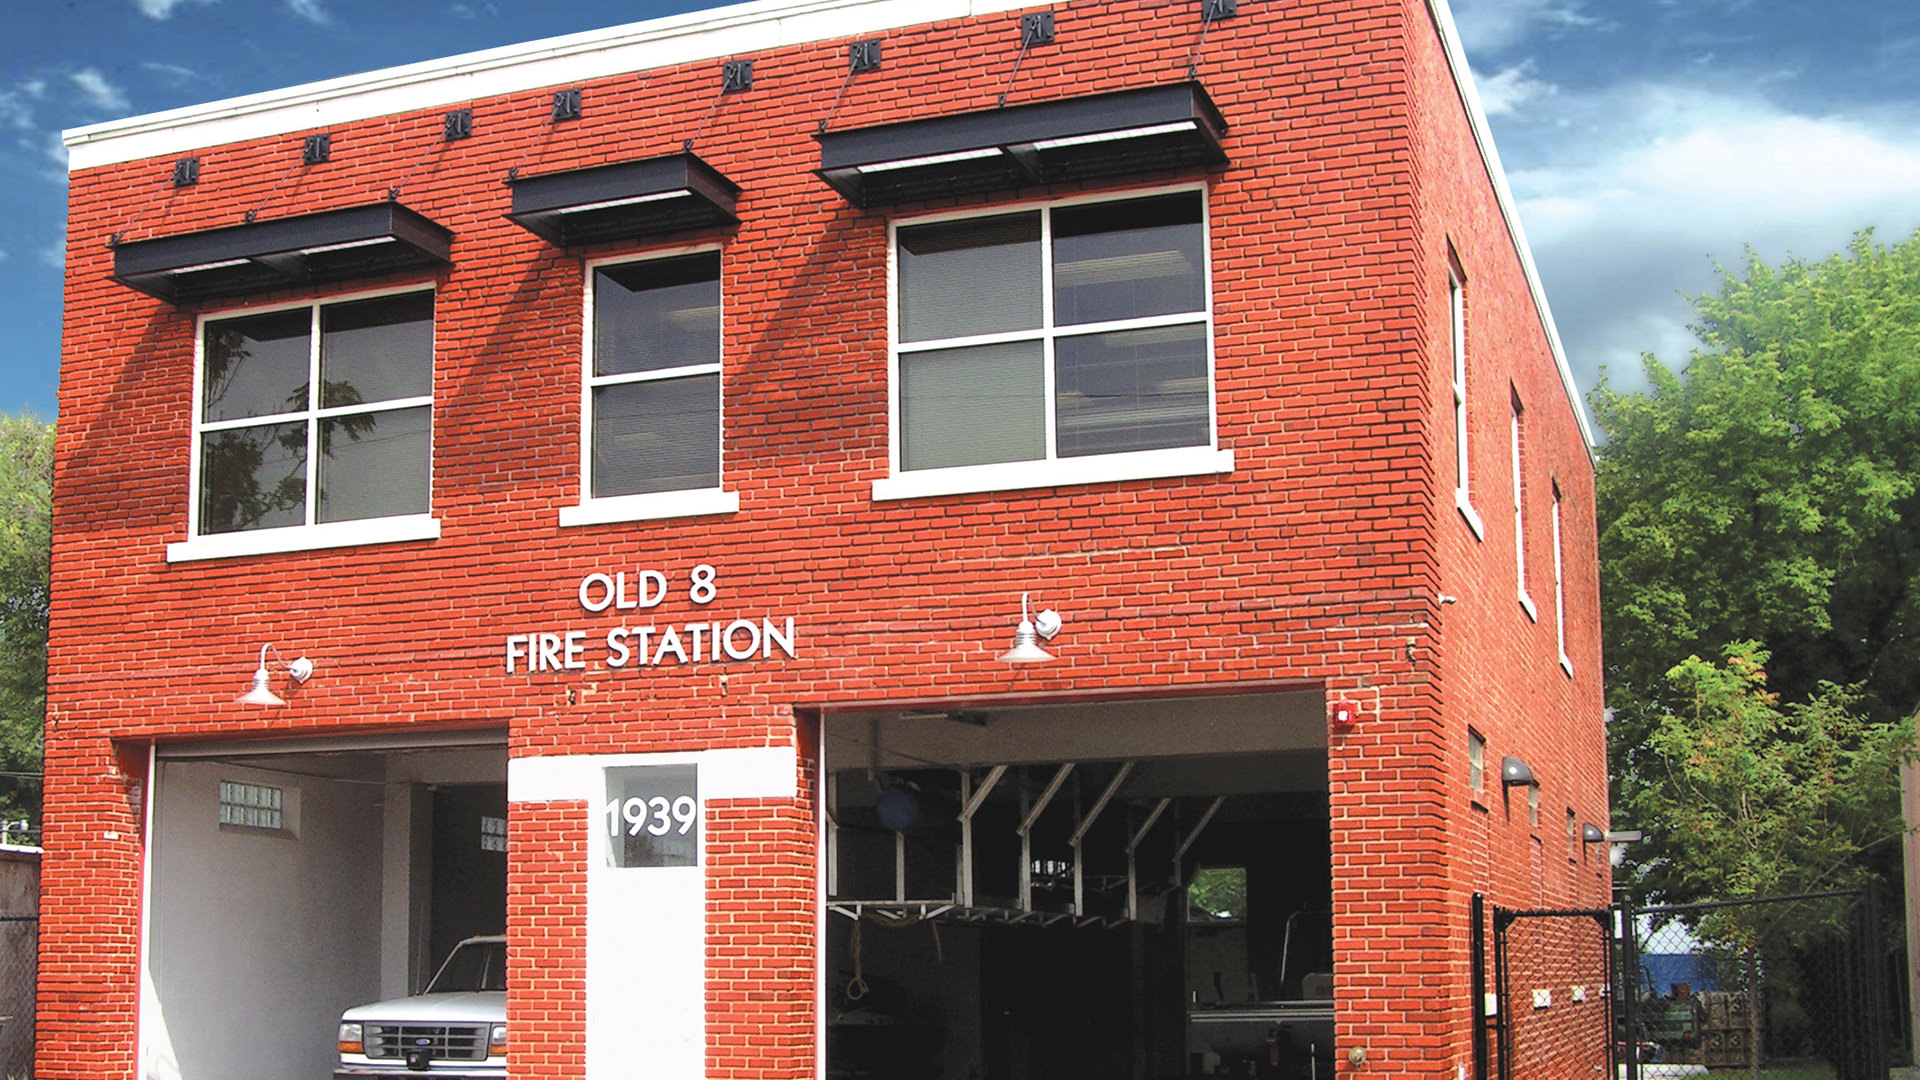 Old Fire Station No 8 Hsearchitects